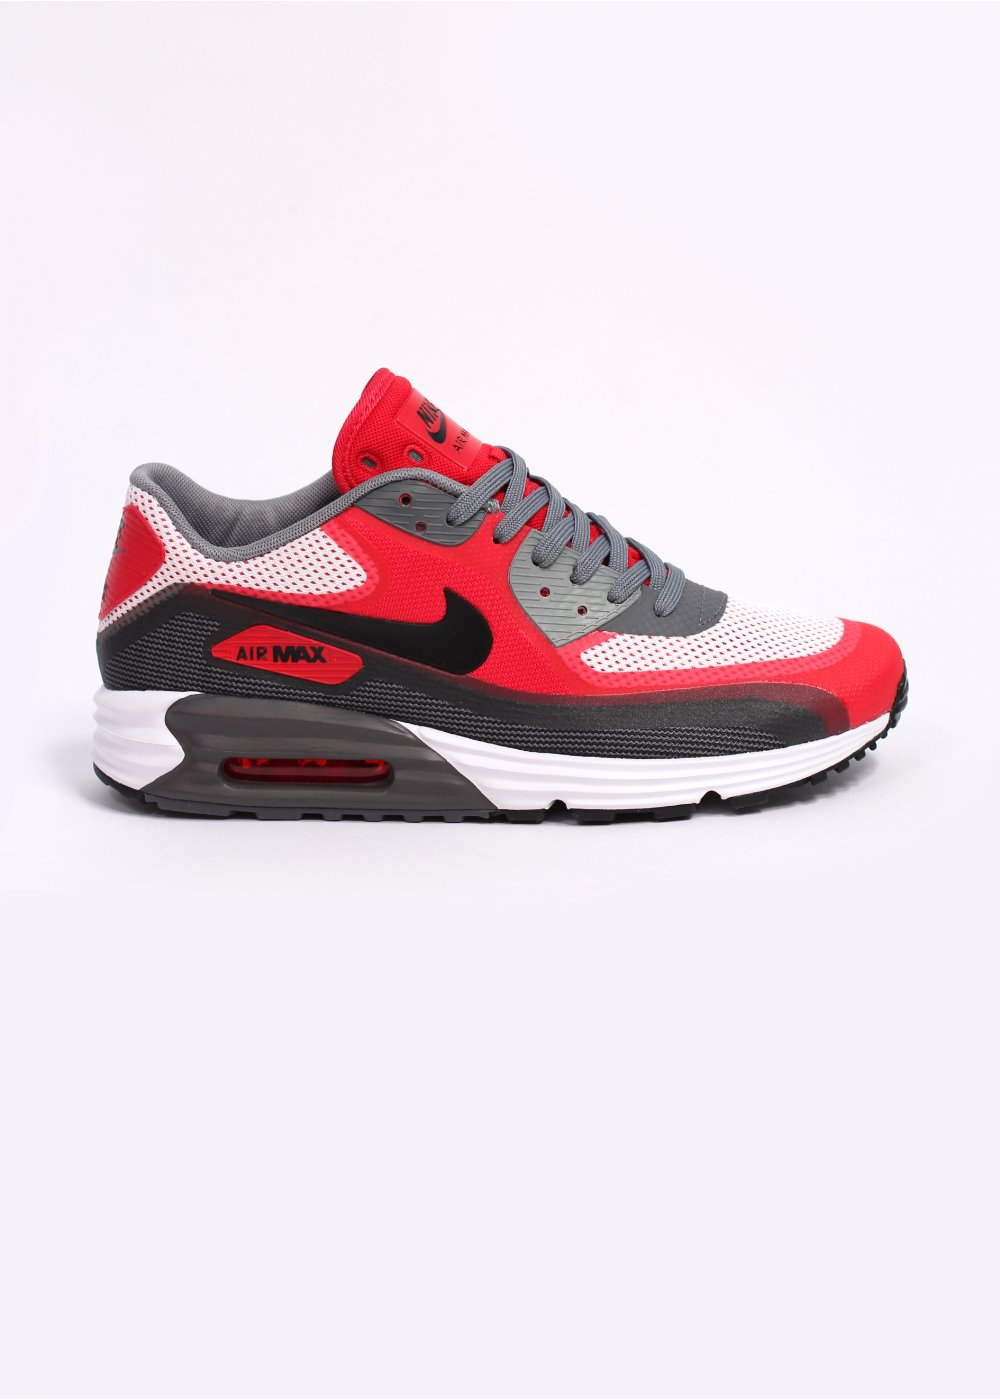 low priced 0b0eb 12c1d Nike Air Max Lunar 90 C3.0 Trainers - White   Black   University Red